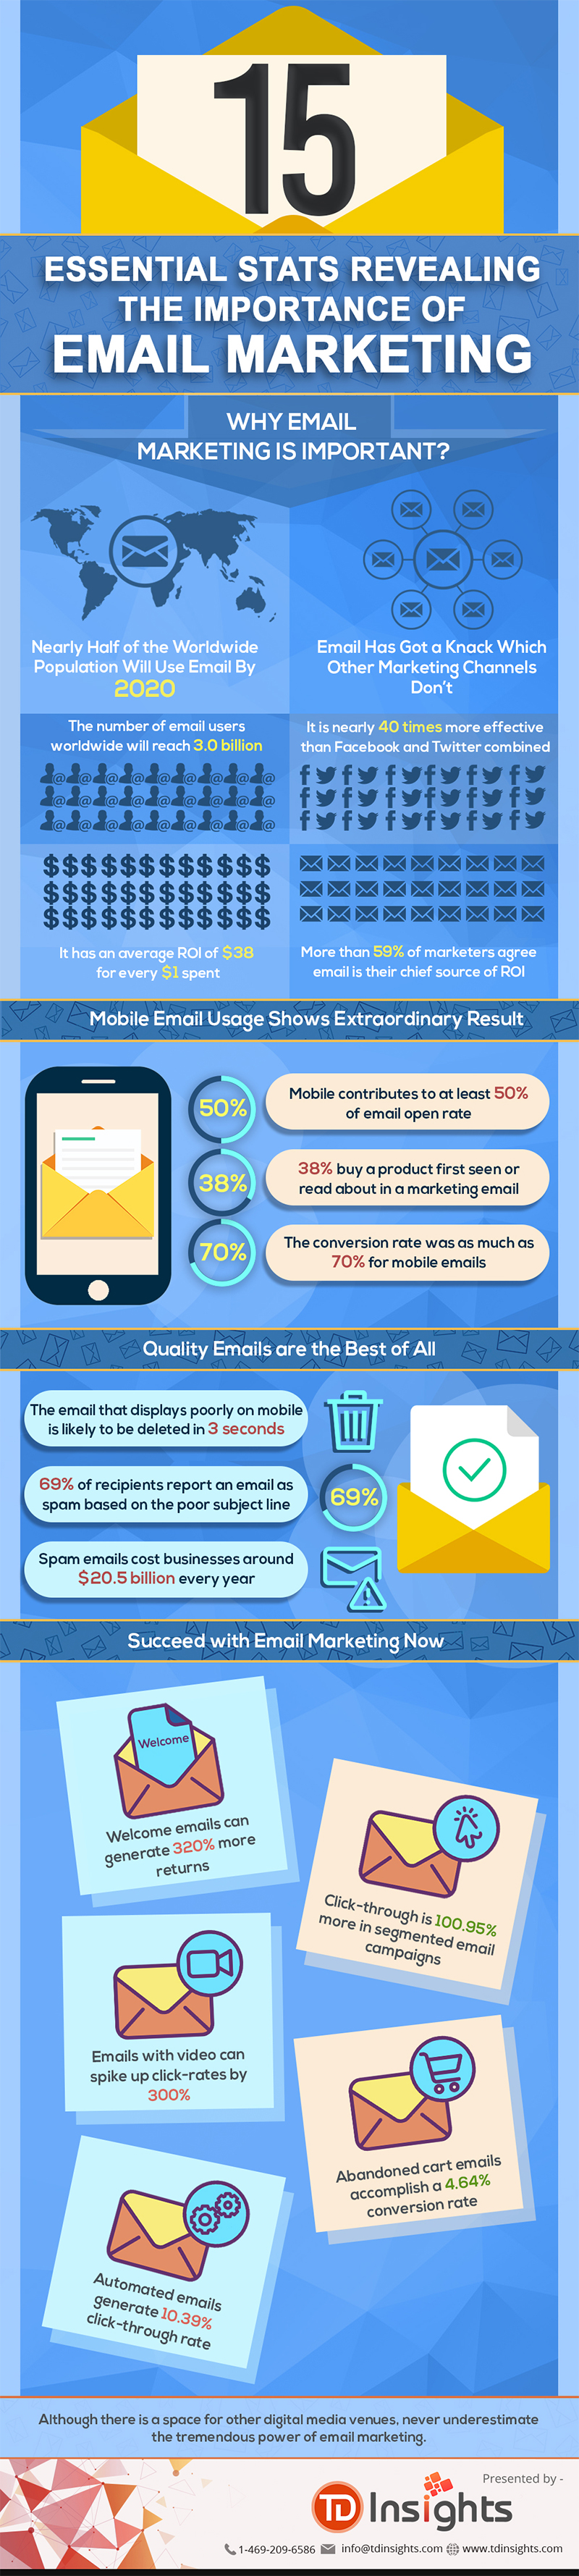 Infographic with 15 email marketing stats.